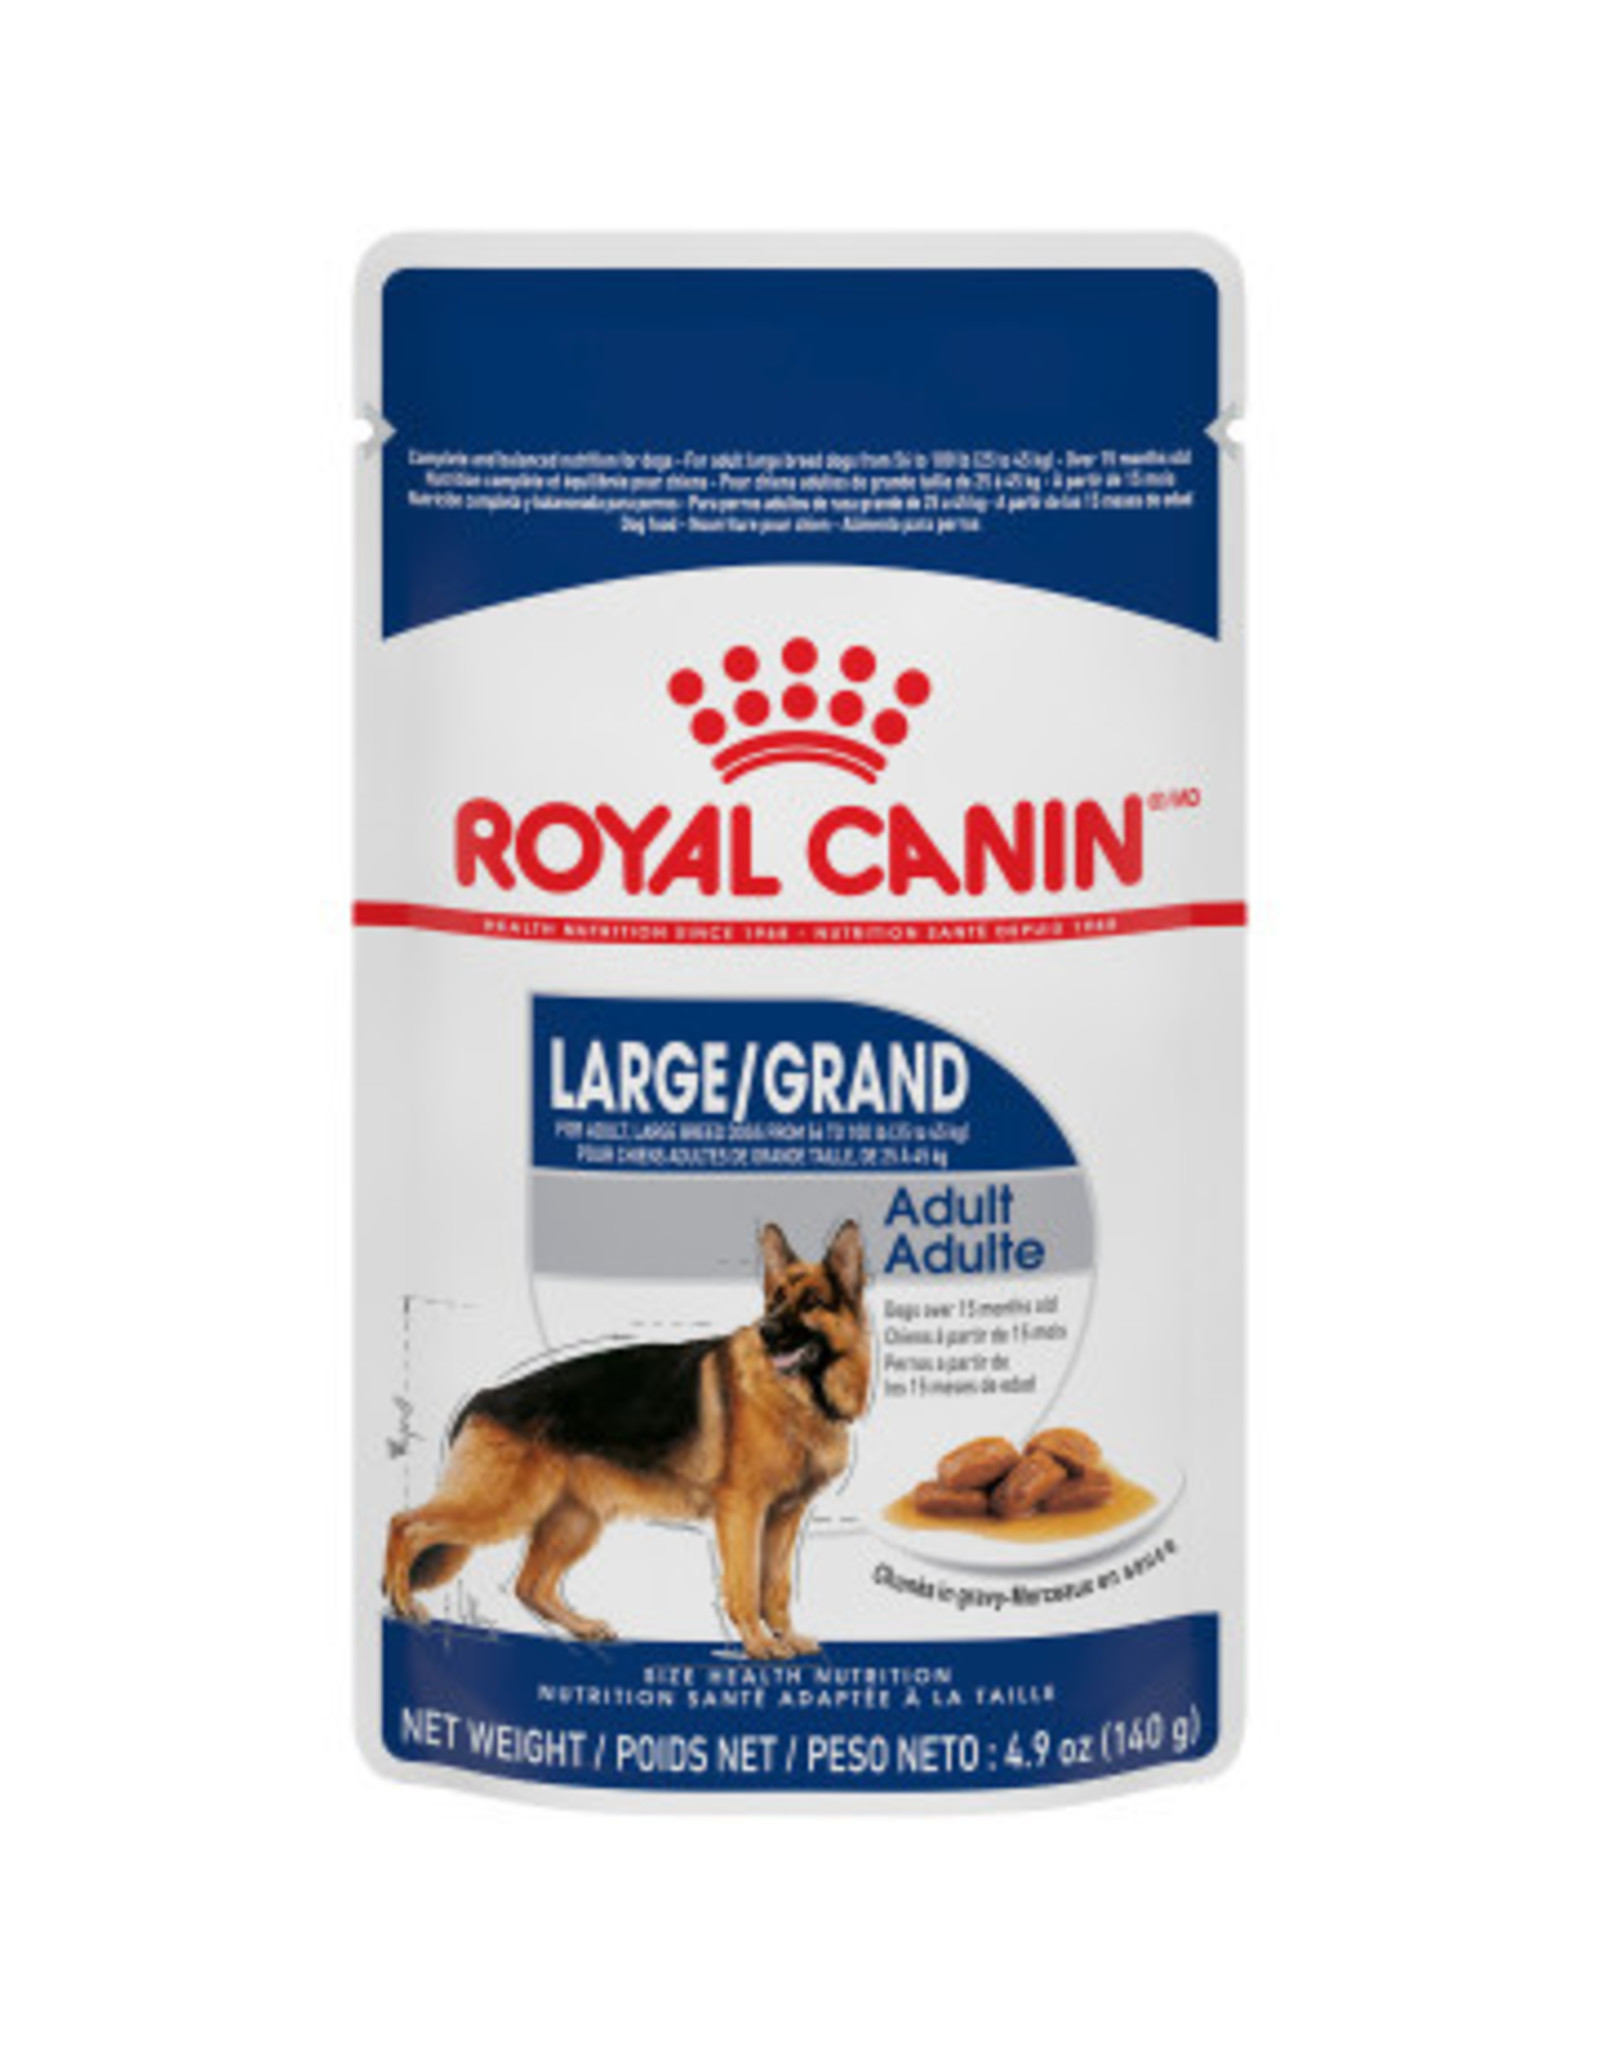 Royal Canin Royal Canin Large Adult Pouch 140g